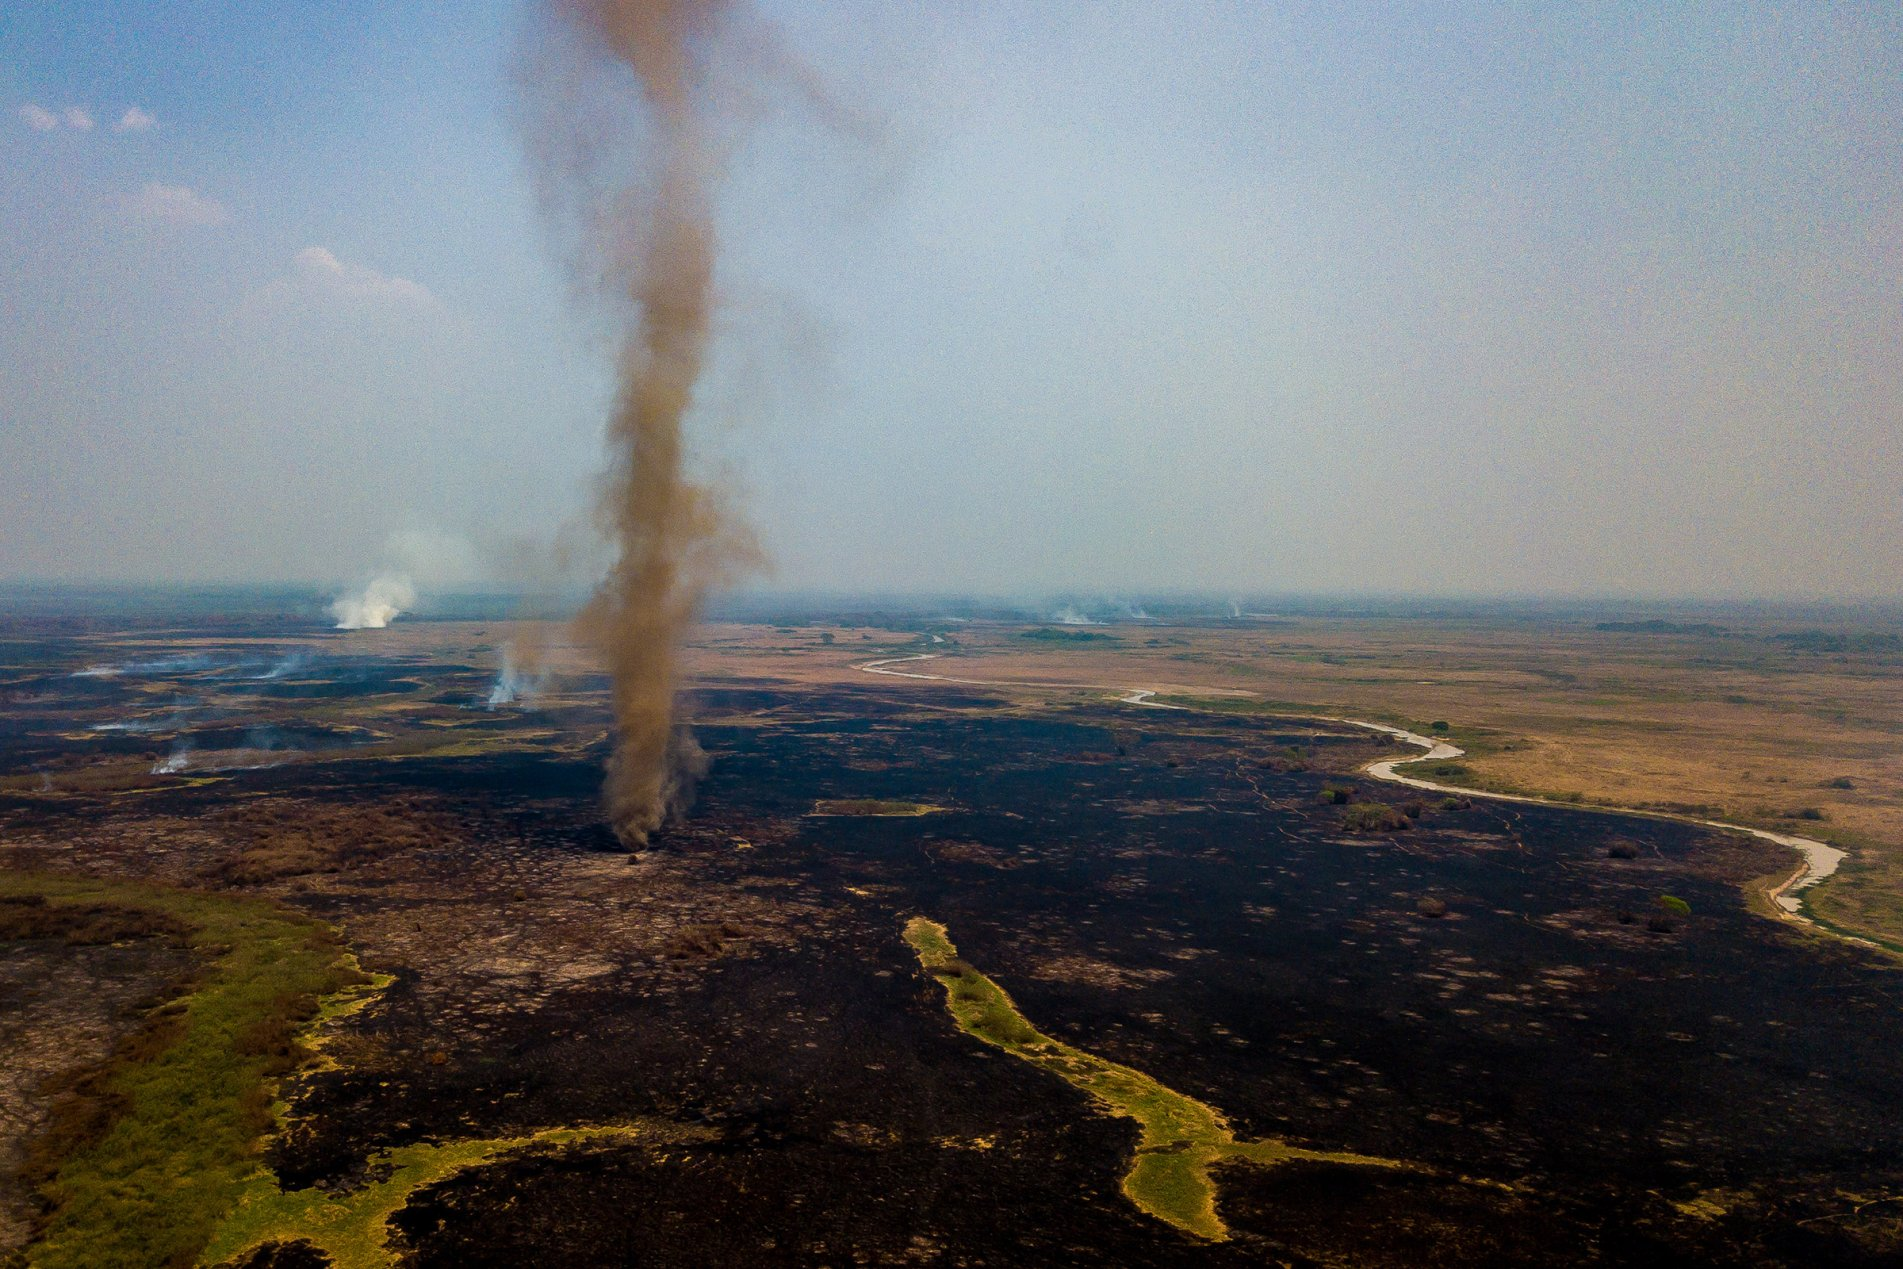 Fires Ravage the Pantanal